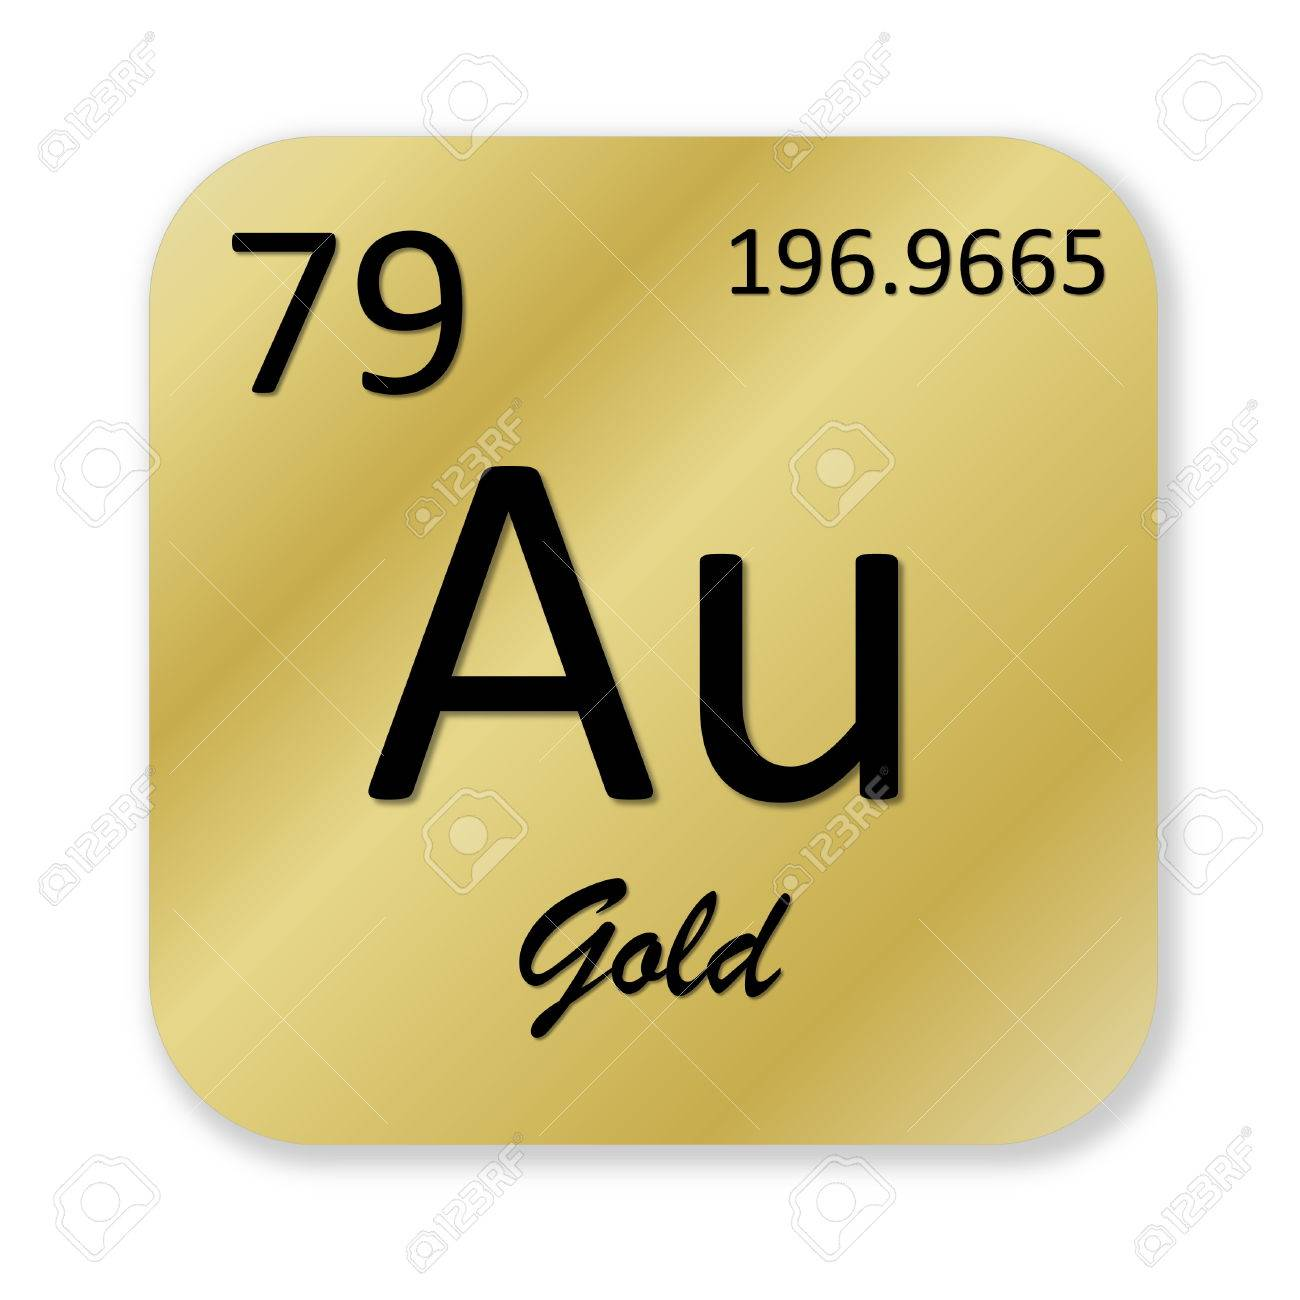 Gold symbol on periodic table images periodic table images element gold periodic table images periodic table images periodic table of elements gold image collections periodic gamestrikefo Image collections